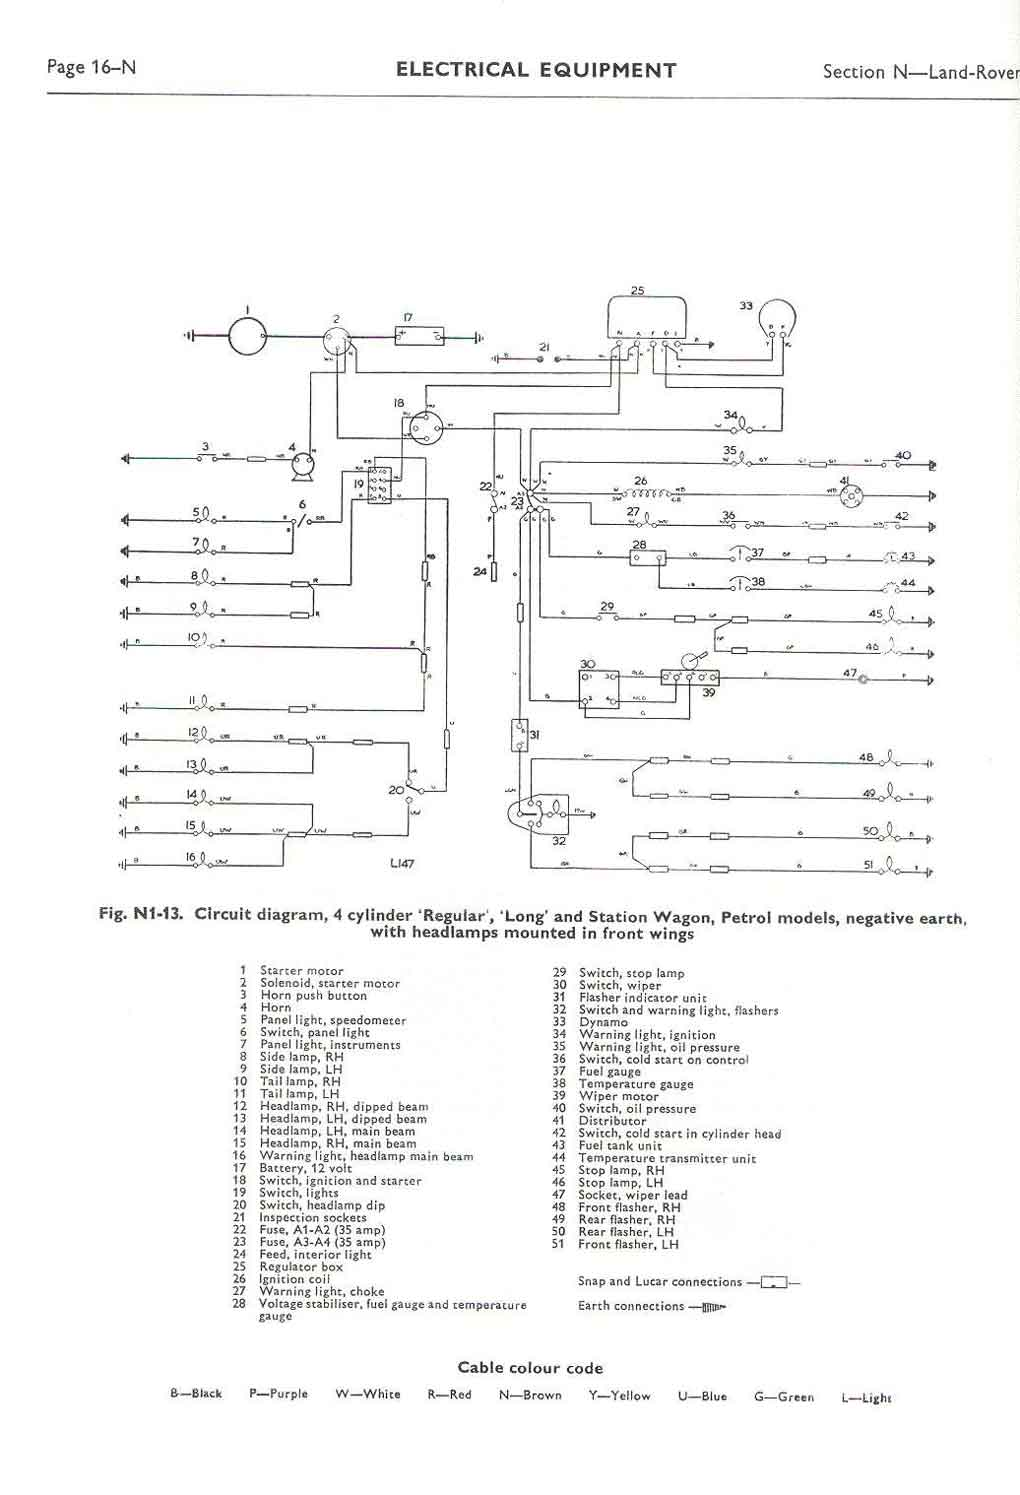 1999 land rover discovery 2 wiring diagram